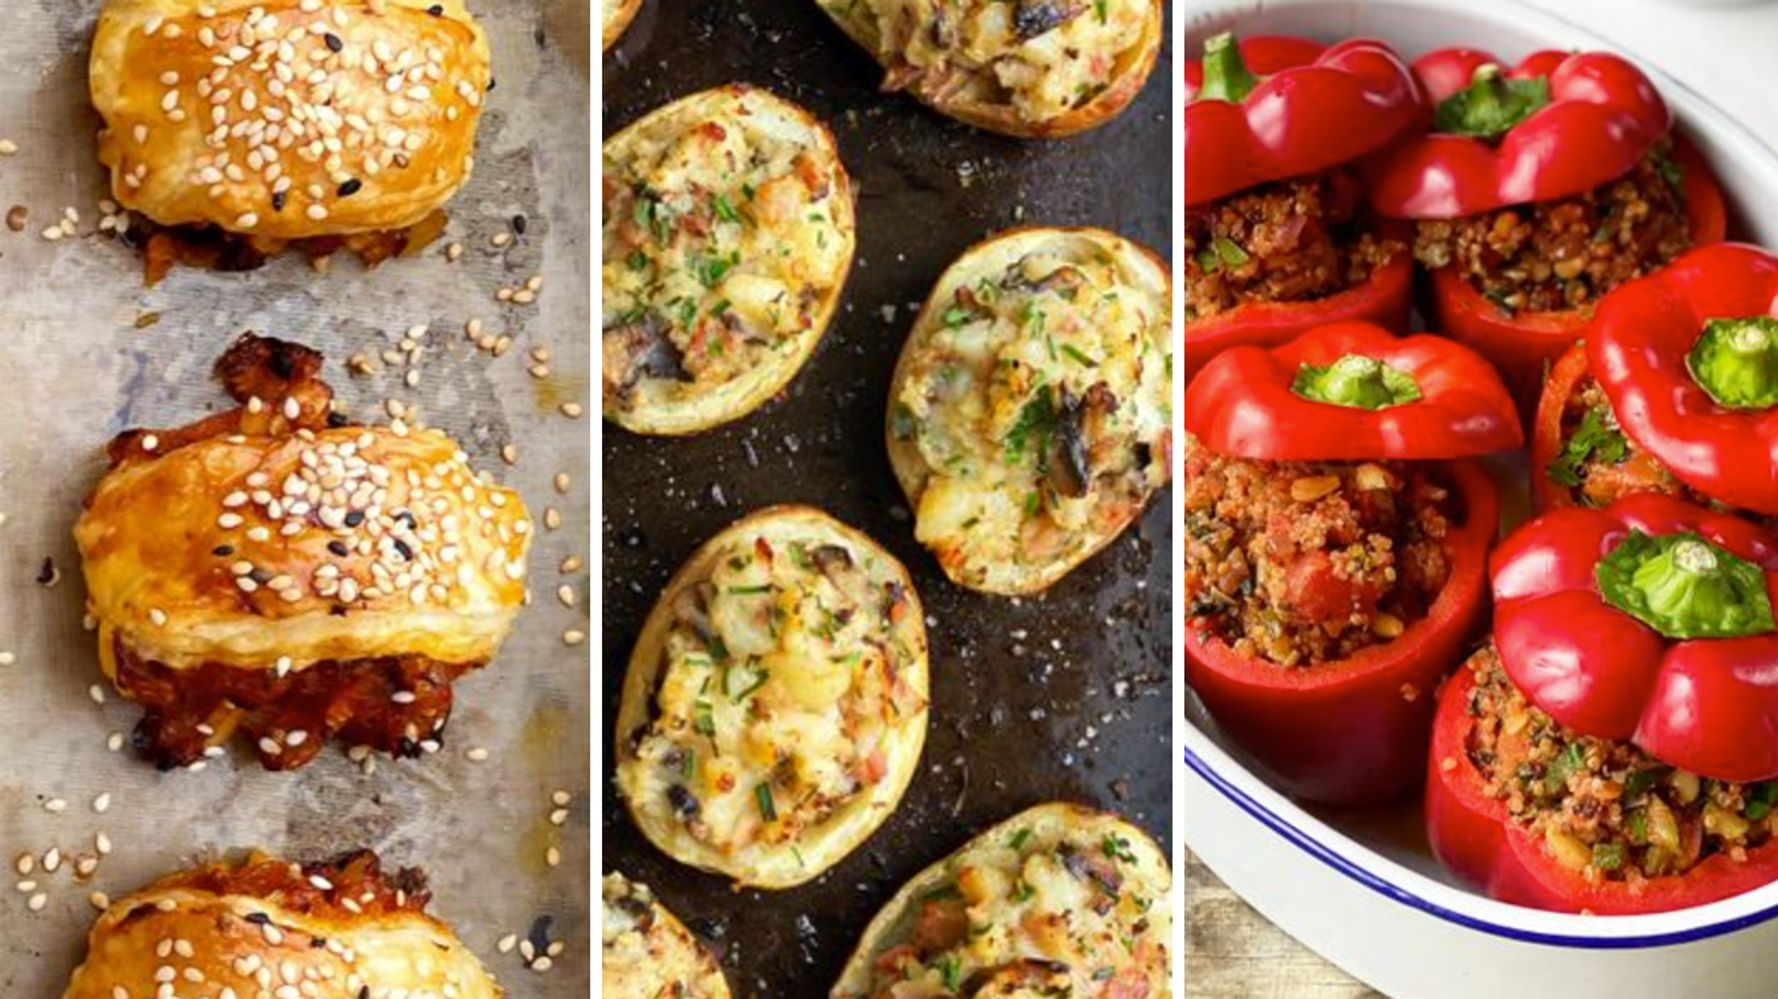 3 Batch Cook Recipes To Jazz Up Your Weekday Lunches